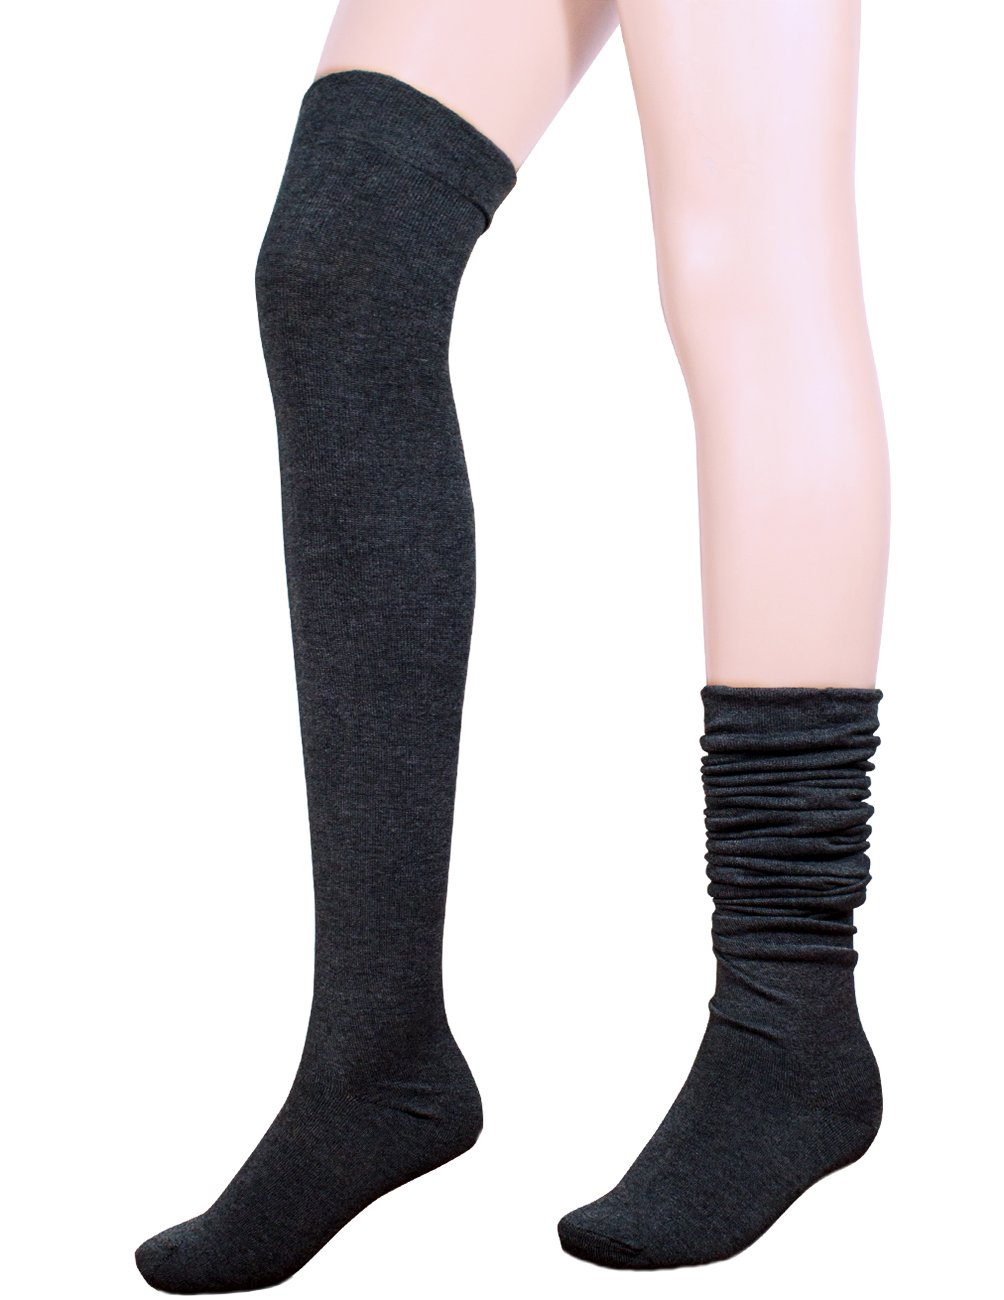 Dahlia Women's Wool Blend Socks - Above the Knee Solid Color - Black